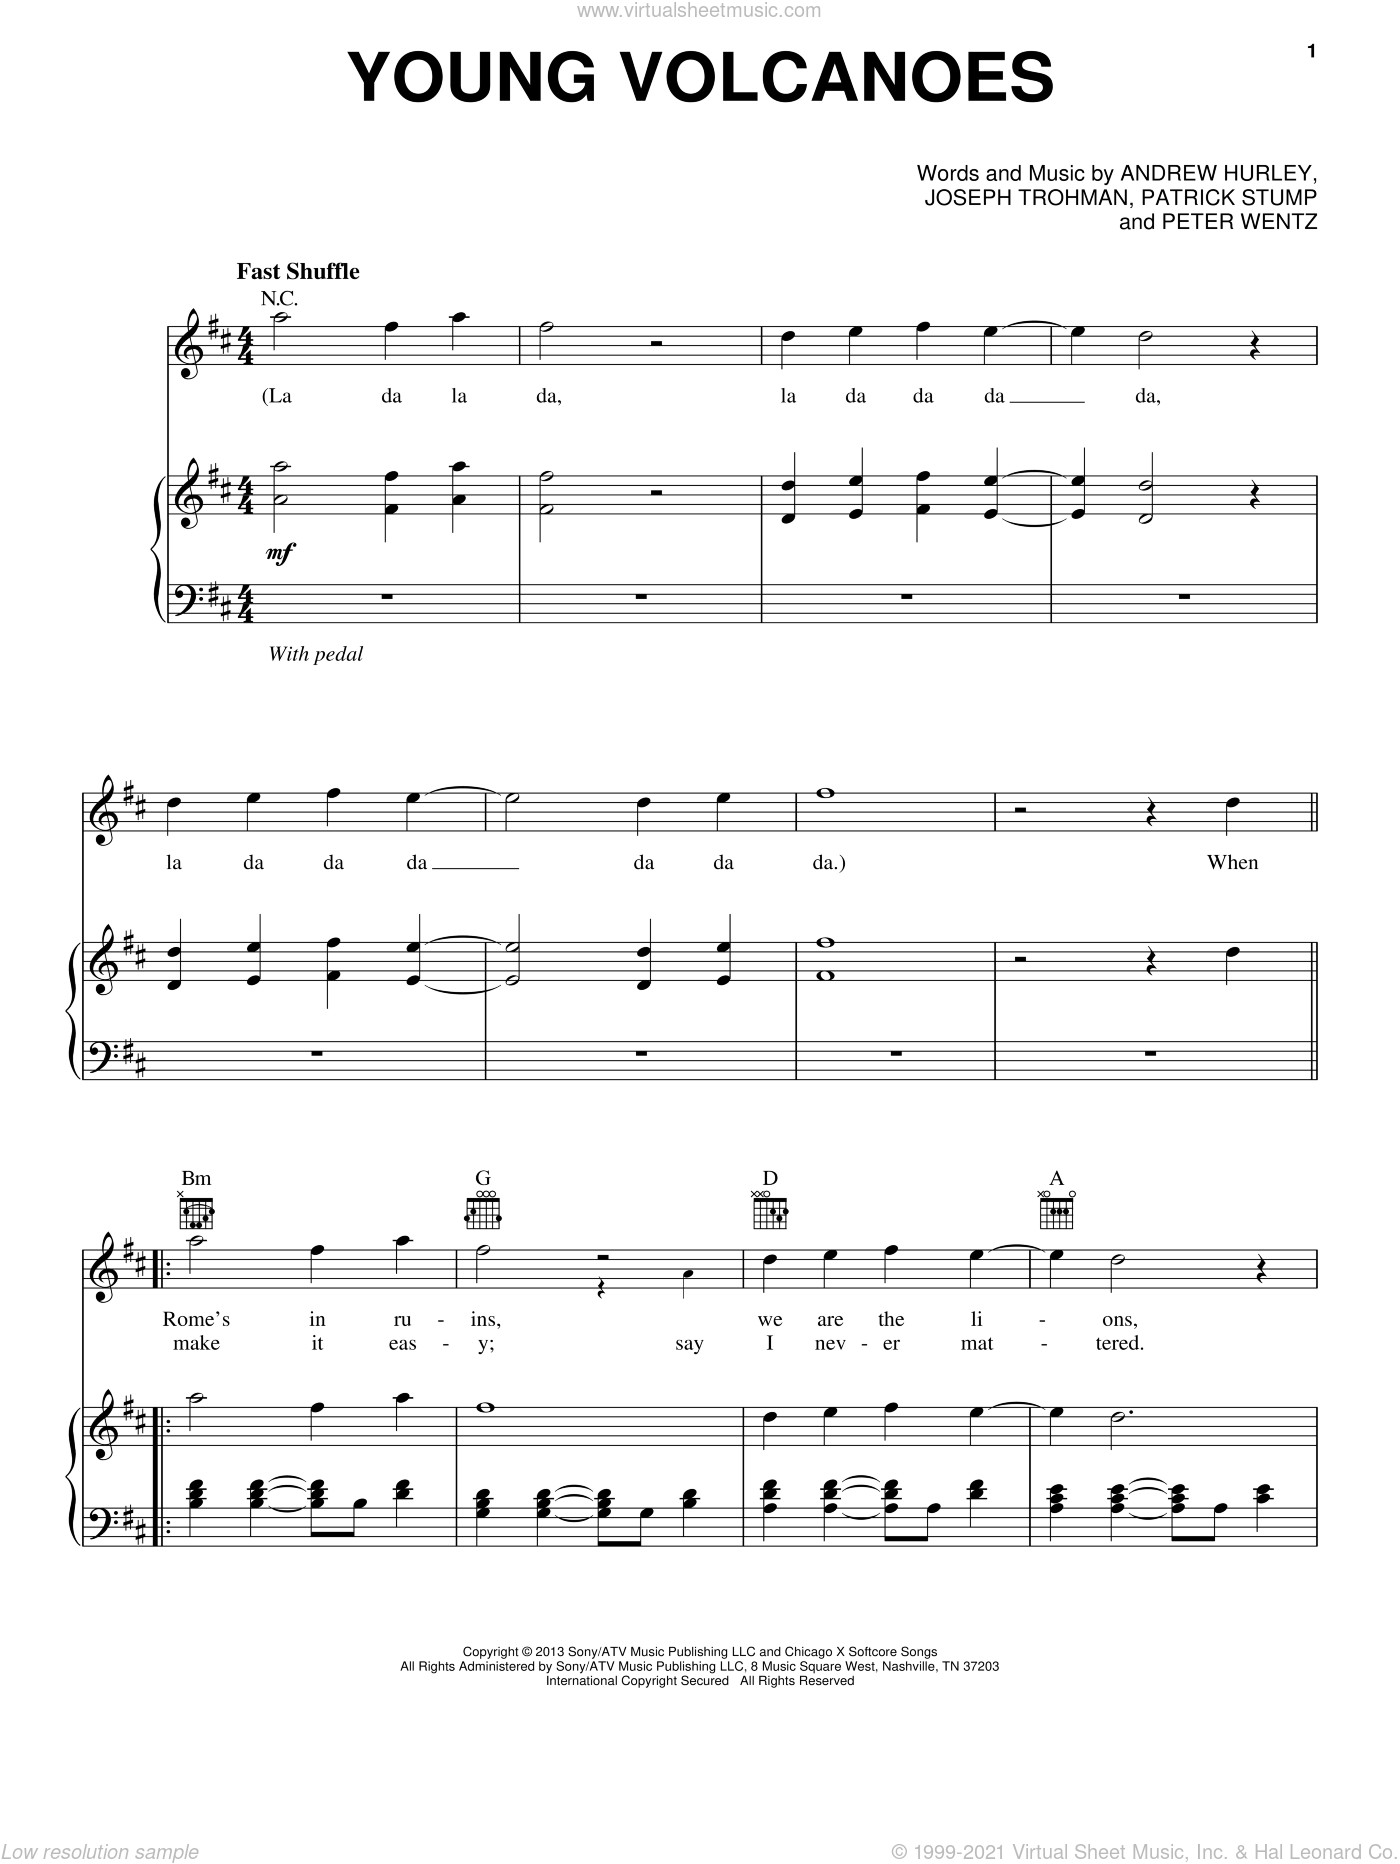 Young Volcanoes sheet music for voice, piano or guitar by Fall Out Boy